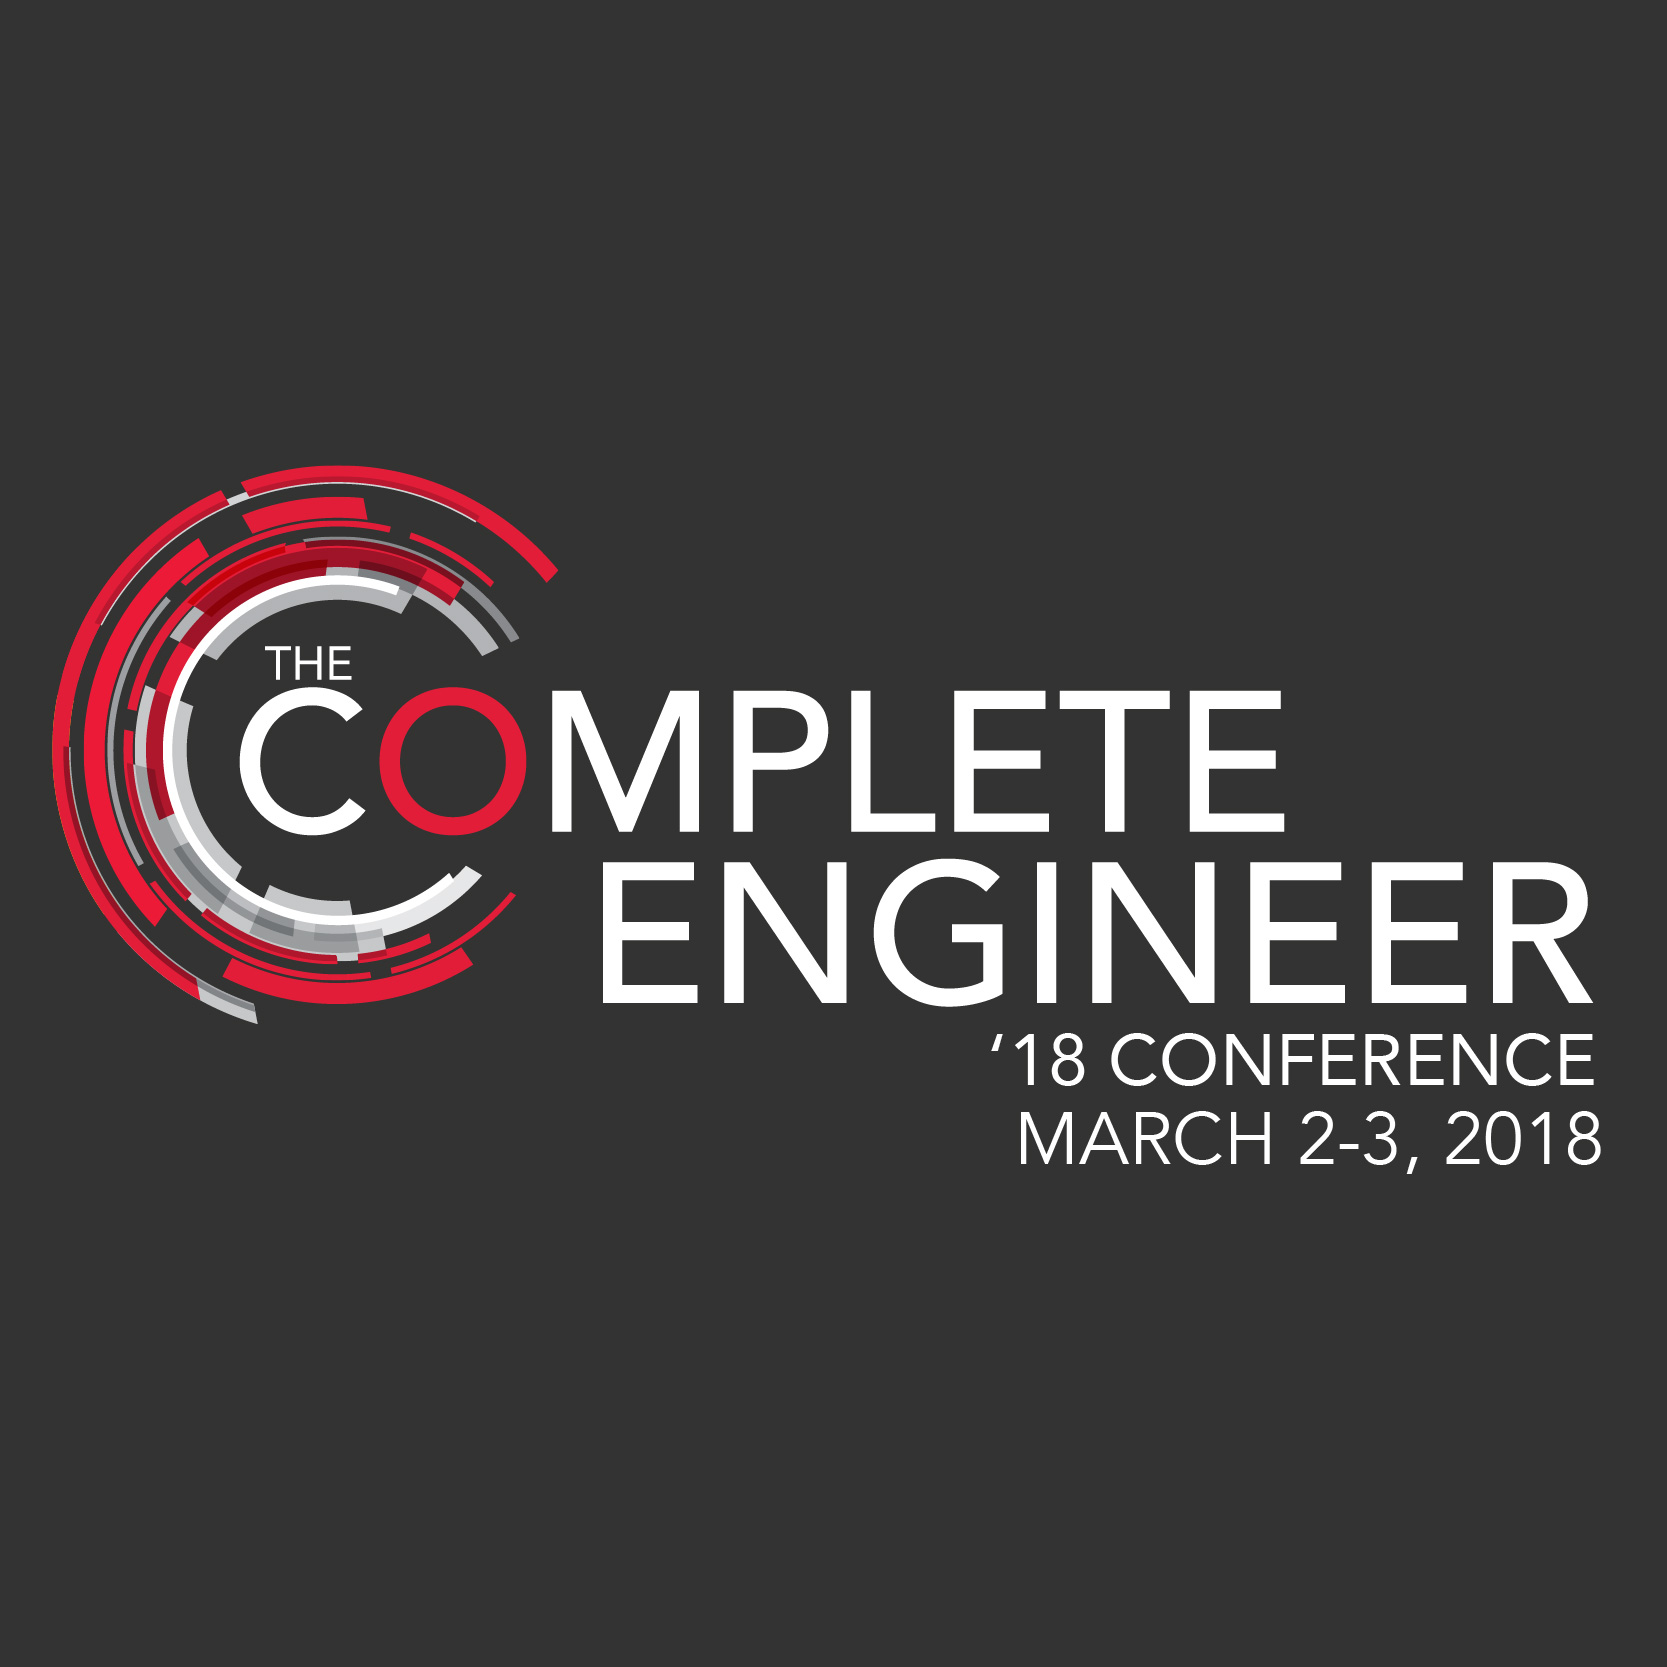 The Complete Engineer Conference, March 2-3, 2018